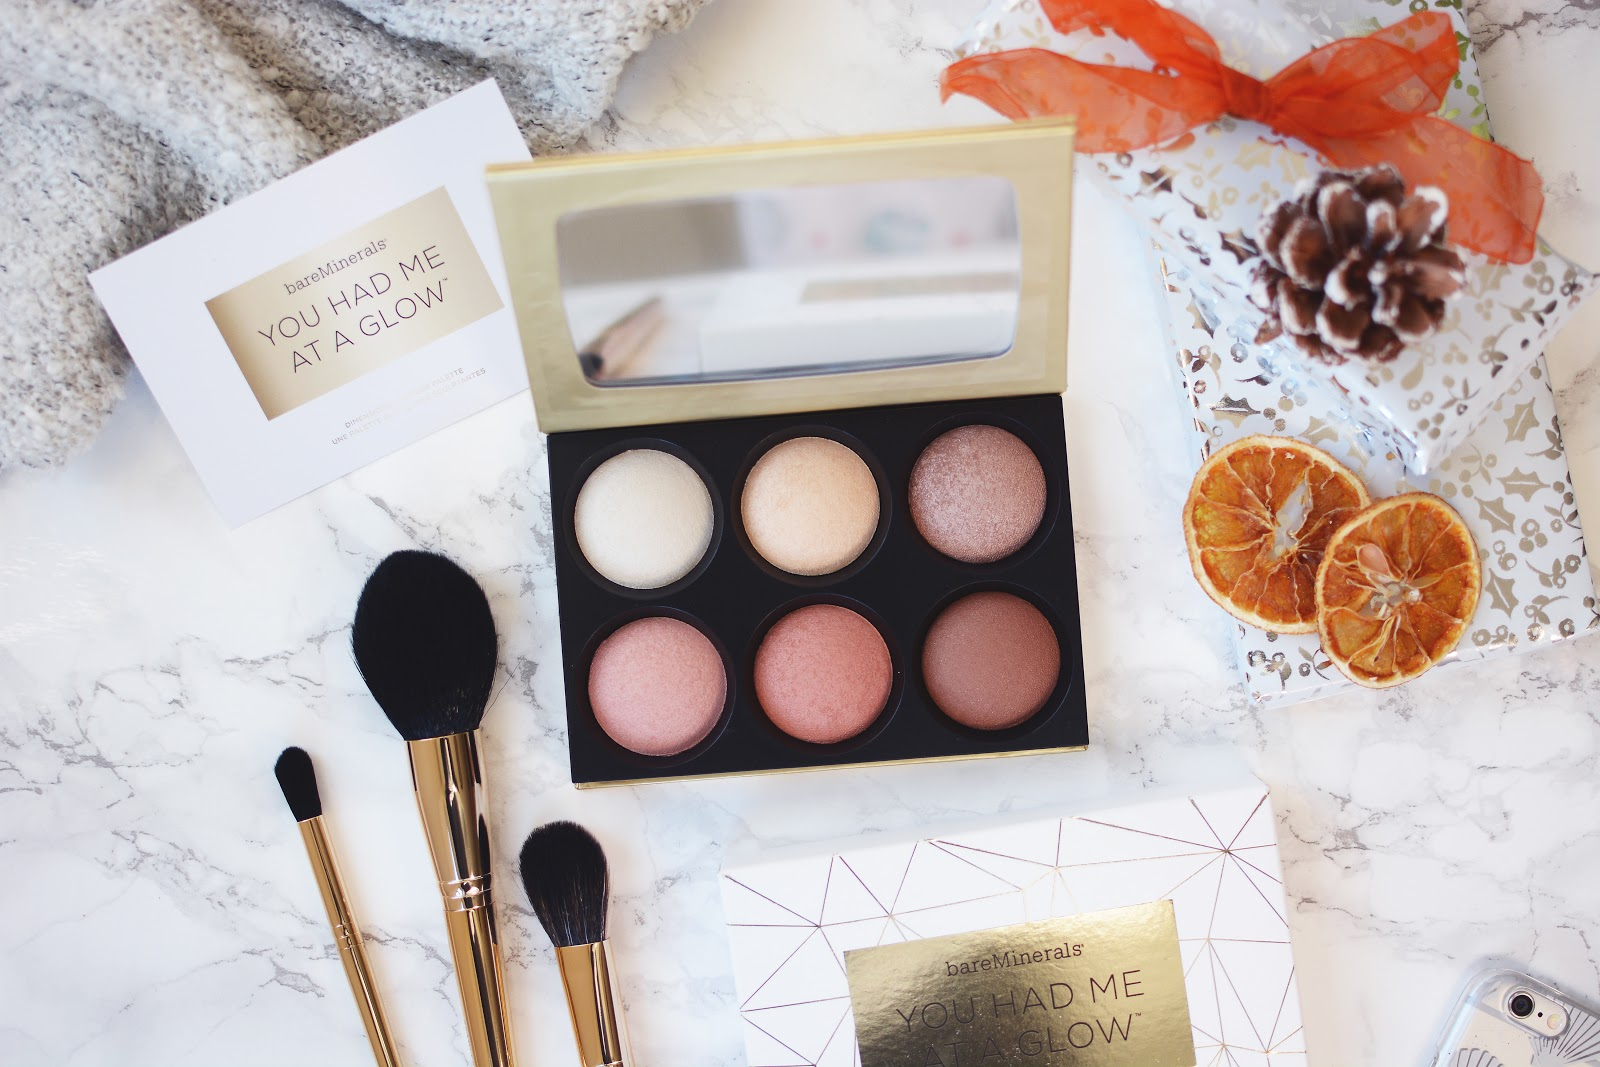 BareMinerals You Had Me At Glow